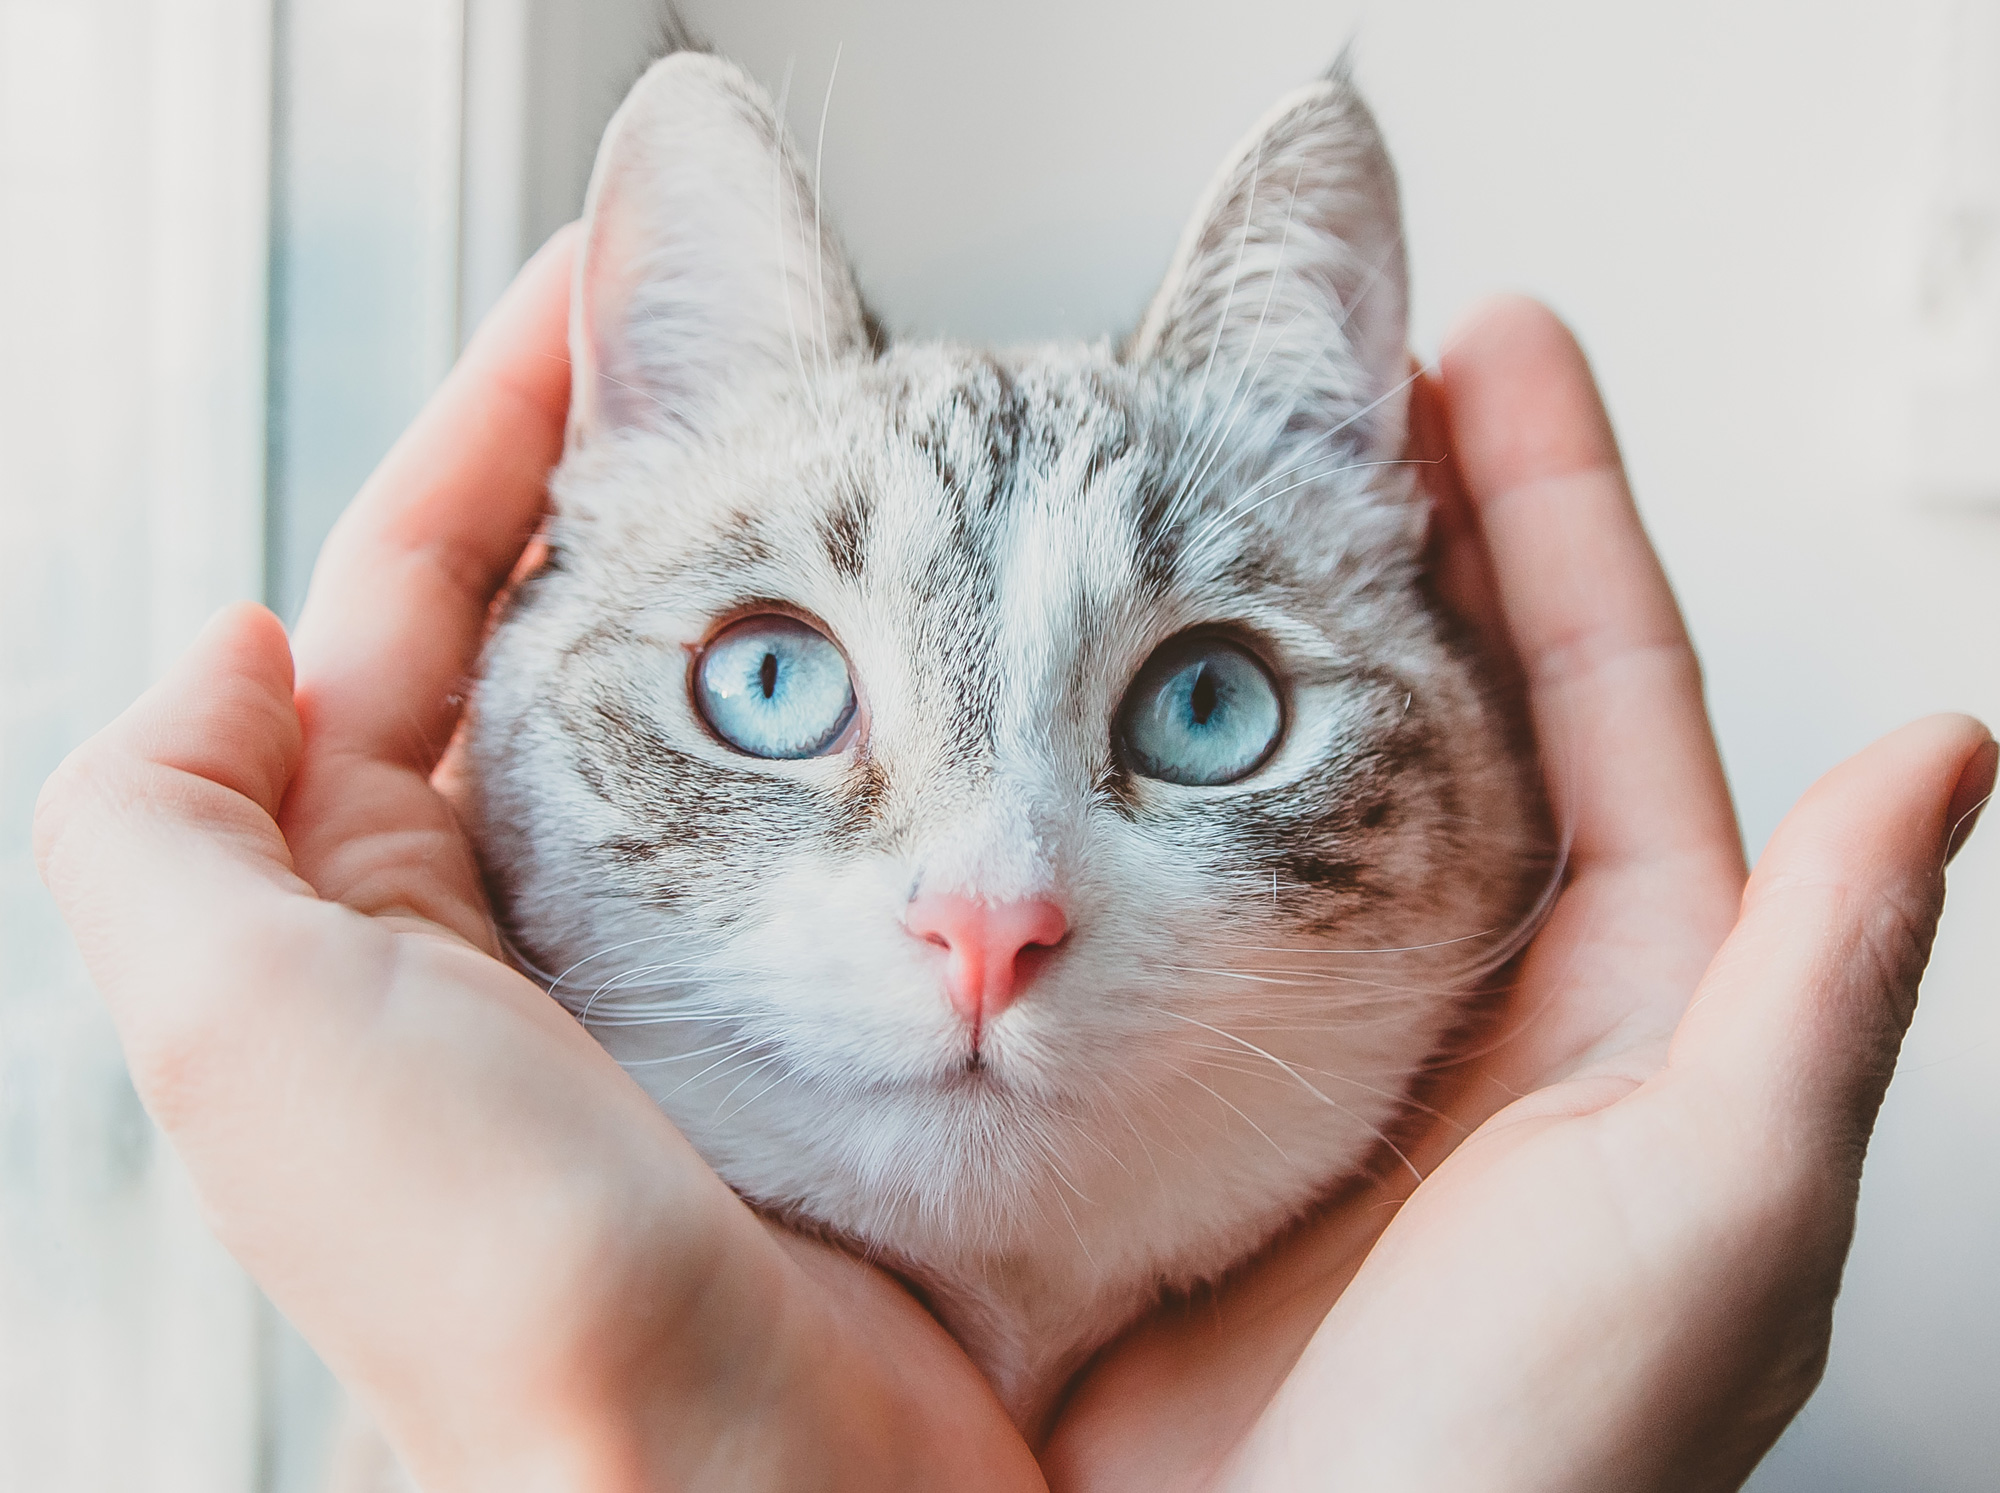 hands cradling a Siamese cat's face